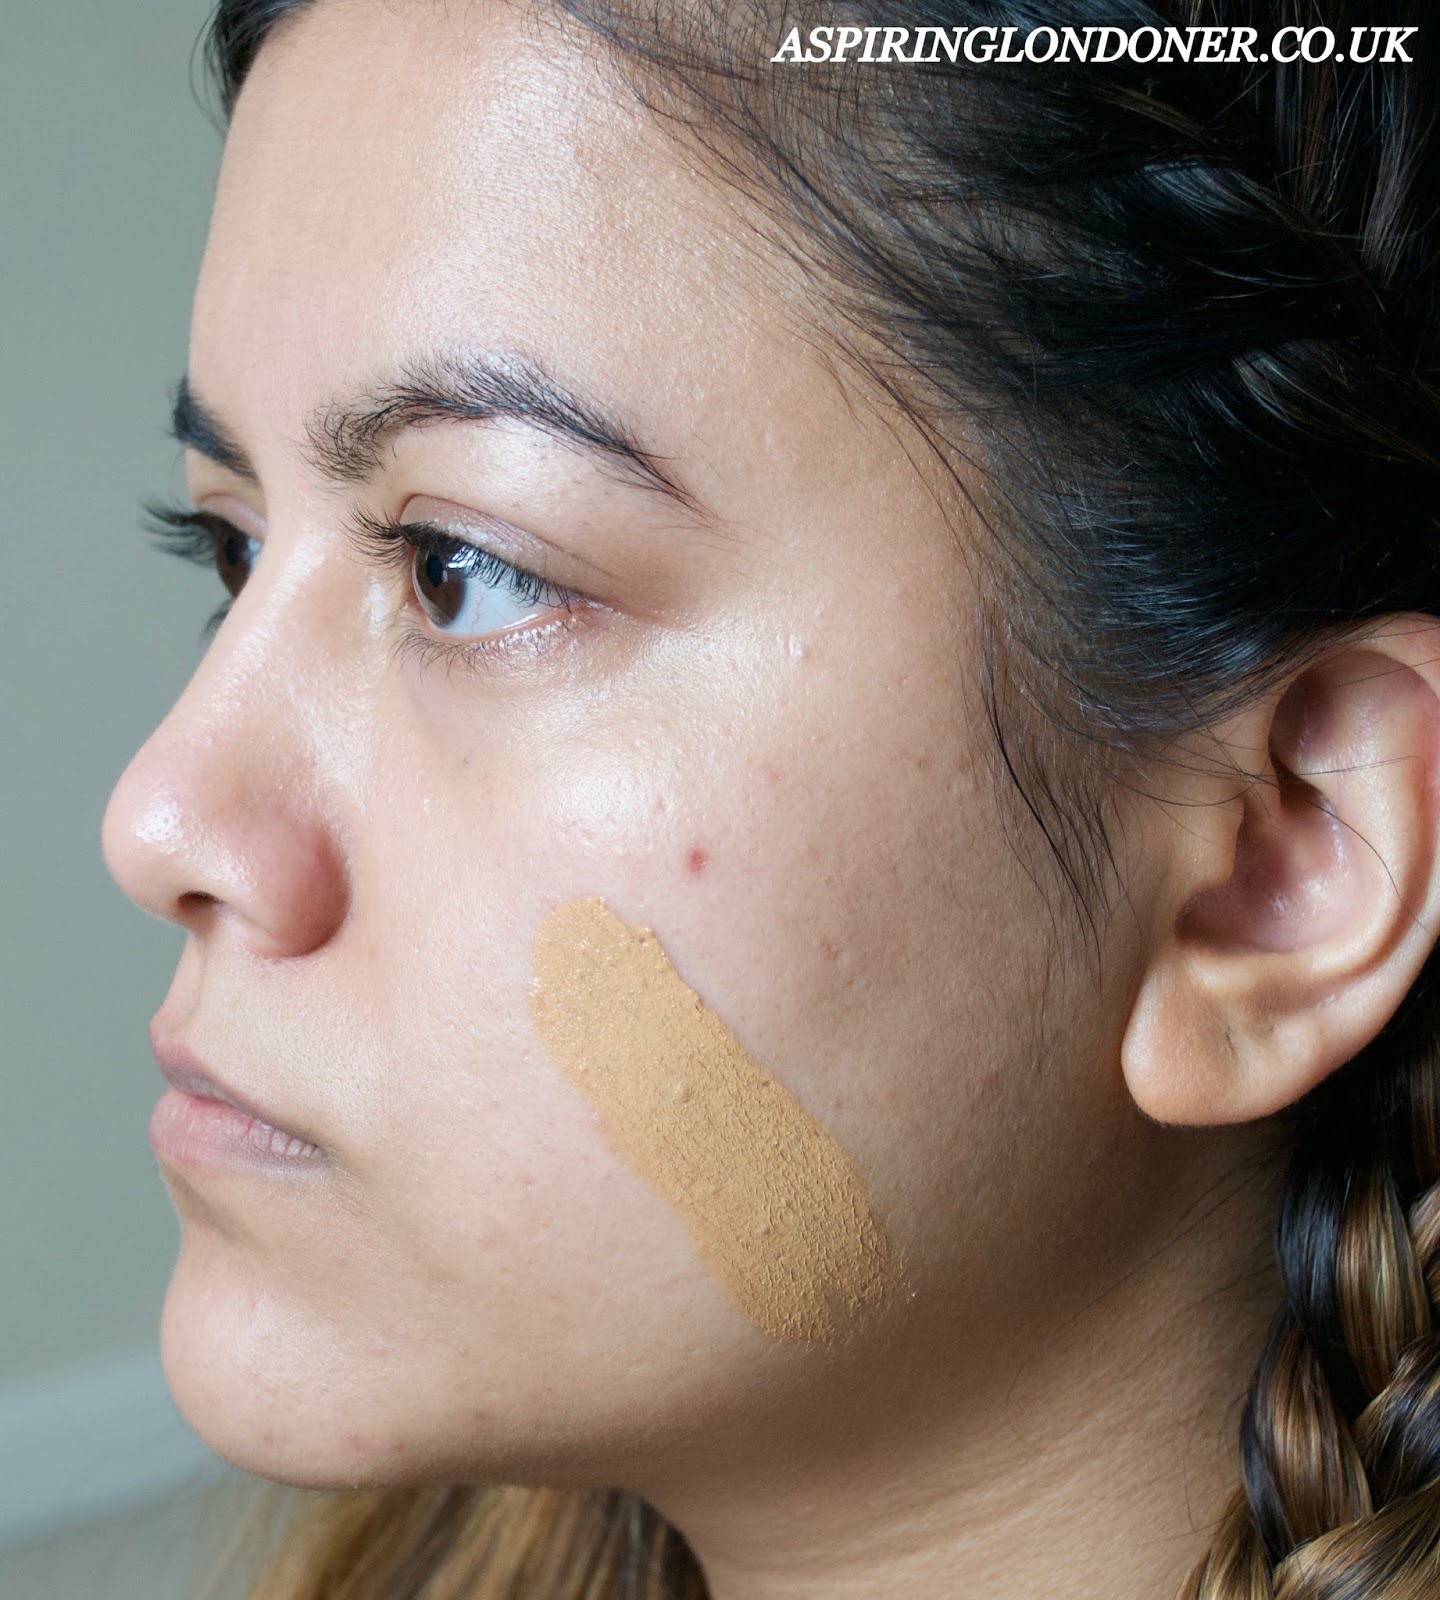 FOUNDATION SHADE MATCH BURBERRY SKIN FRESH GLOW FOUNDATION SWATCH - ASPIRING LONDONER